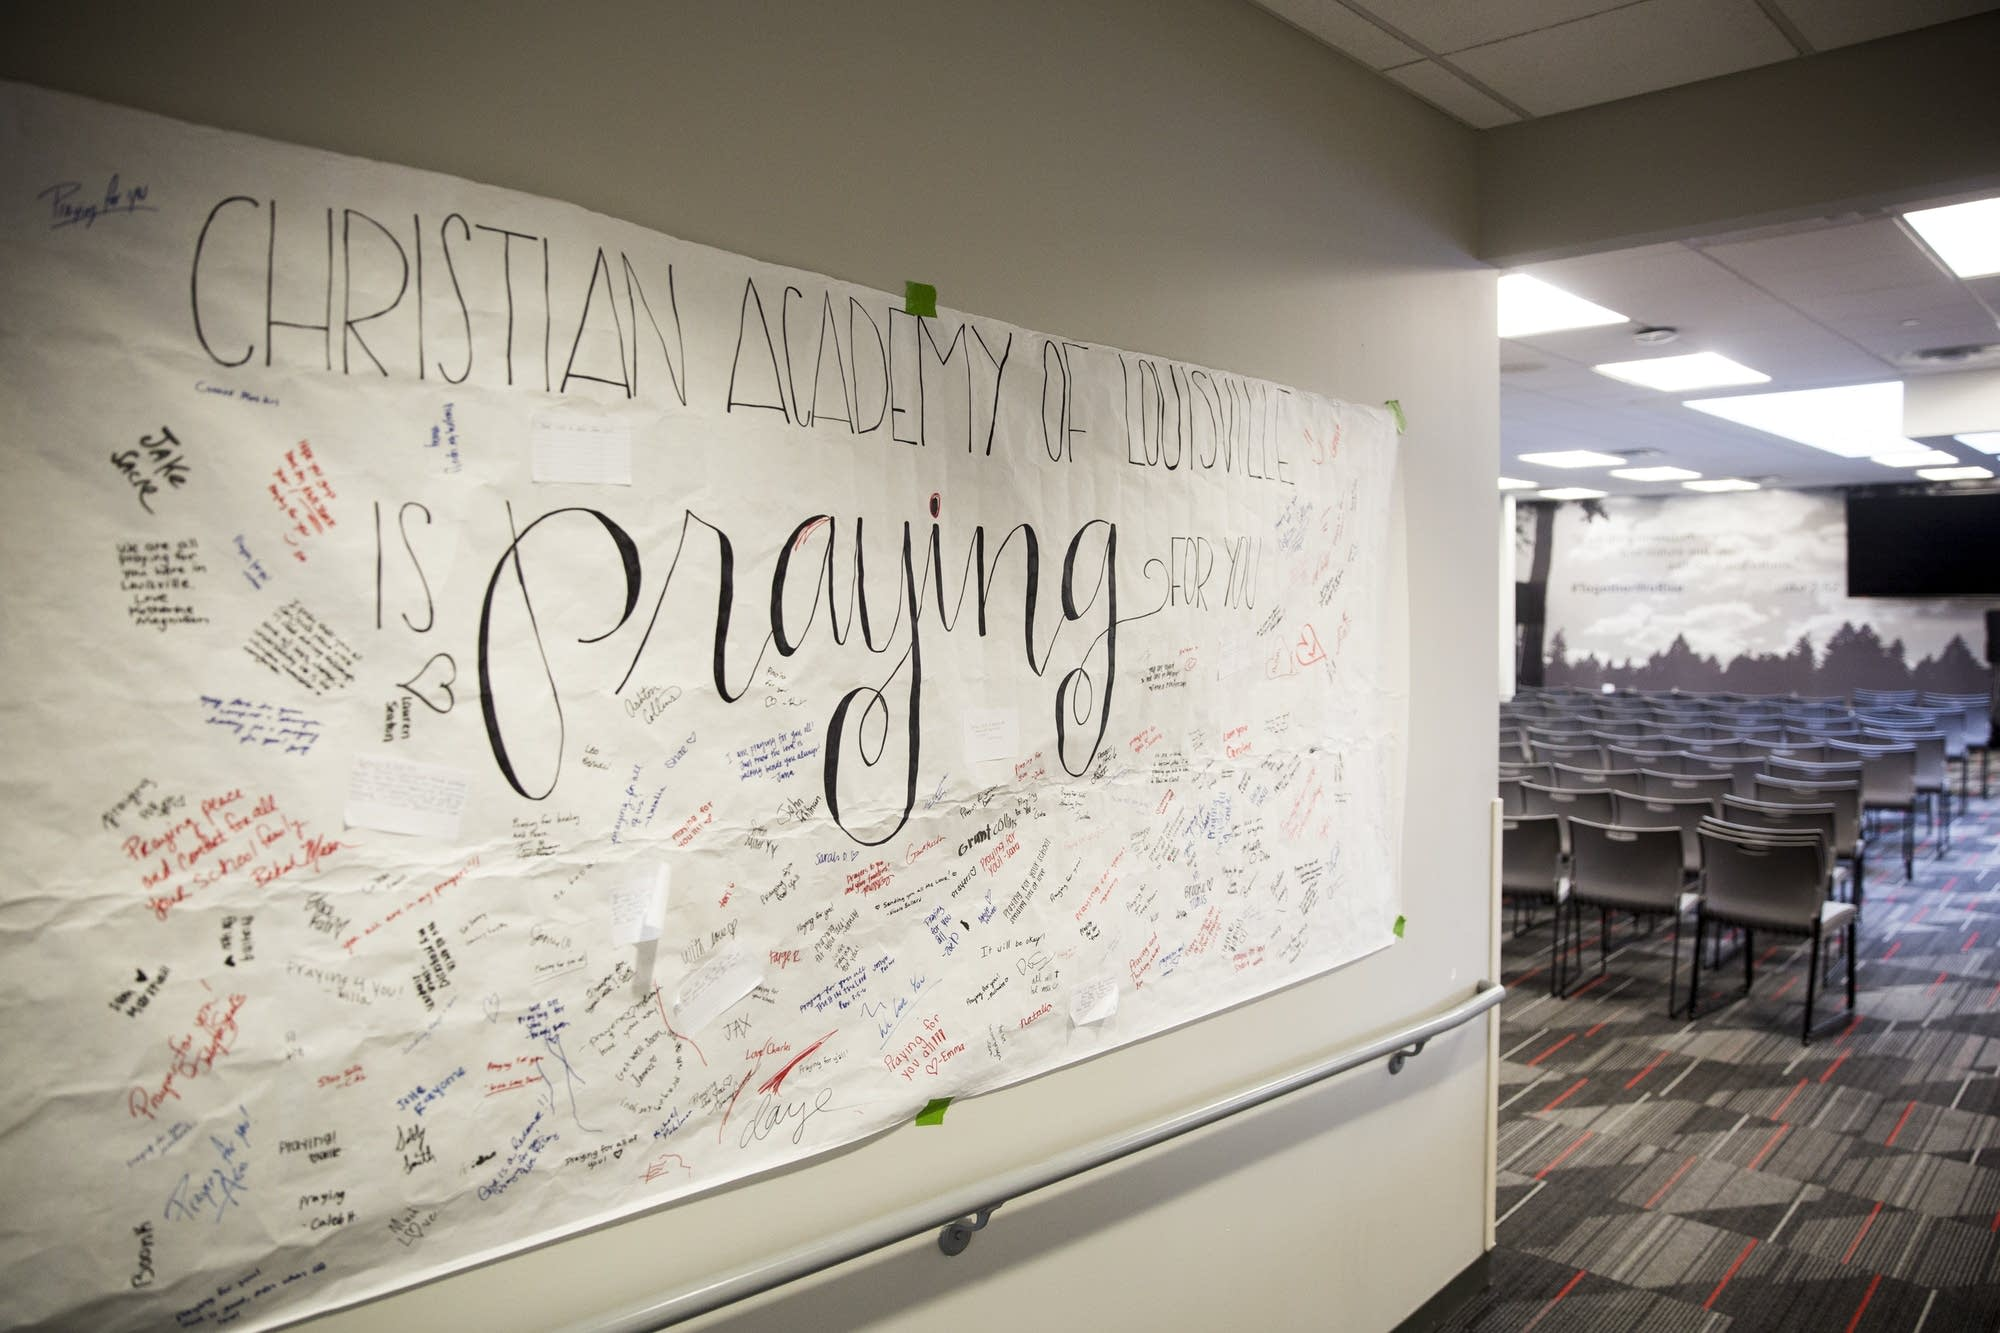 A banner hangs in support of Minnehaha Academy students.